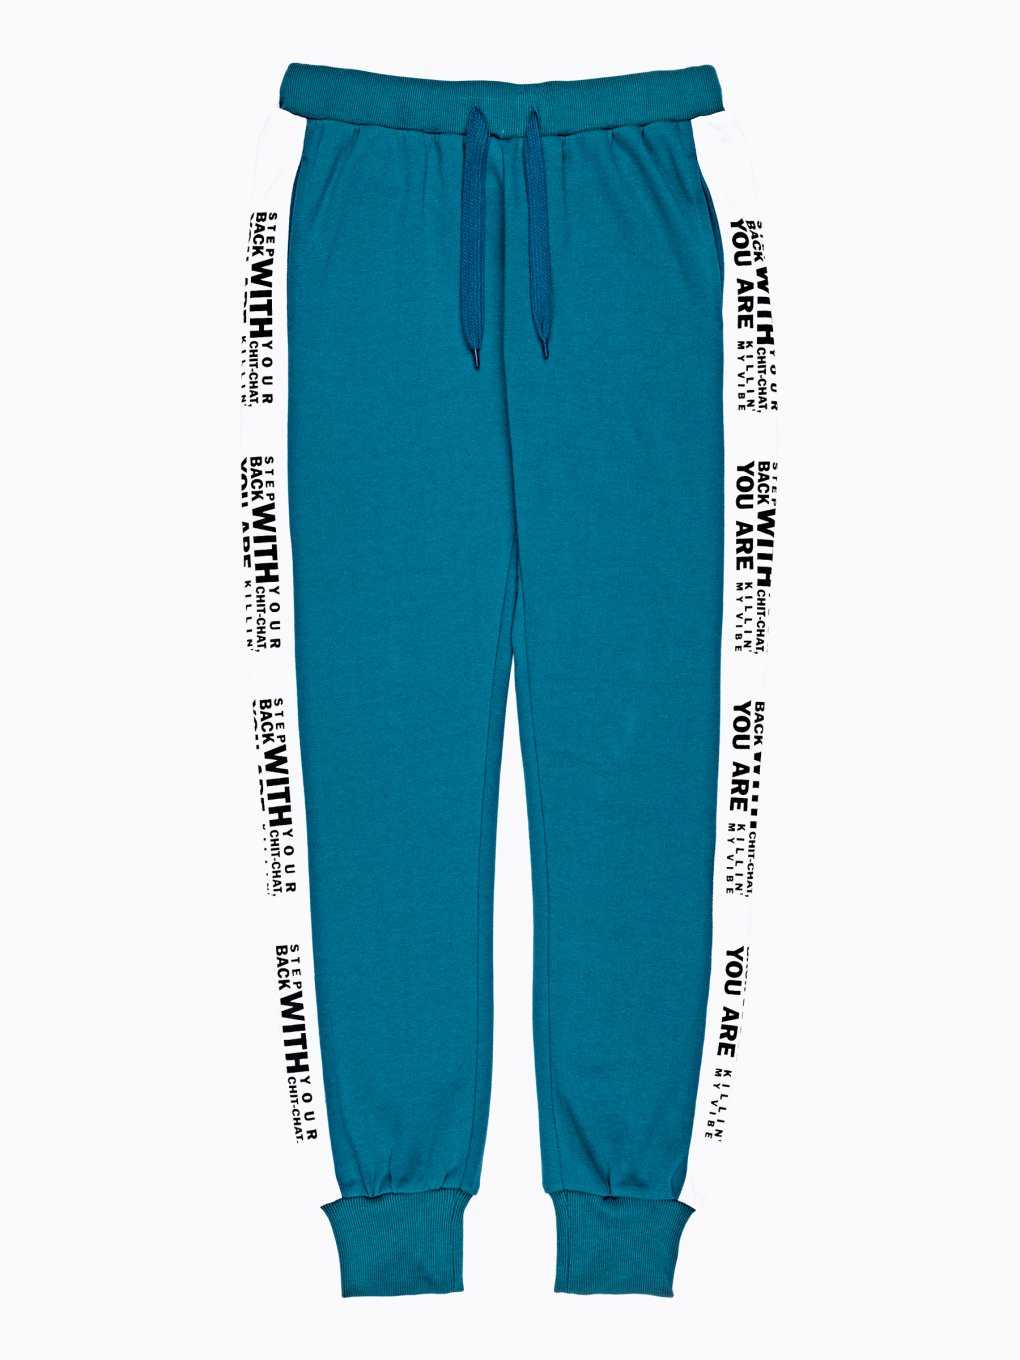 SWEATPANTS WITH CONTRAST SIDE TAPE